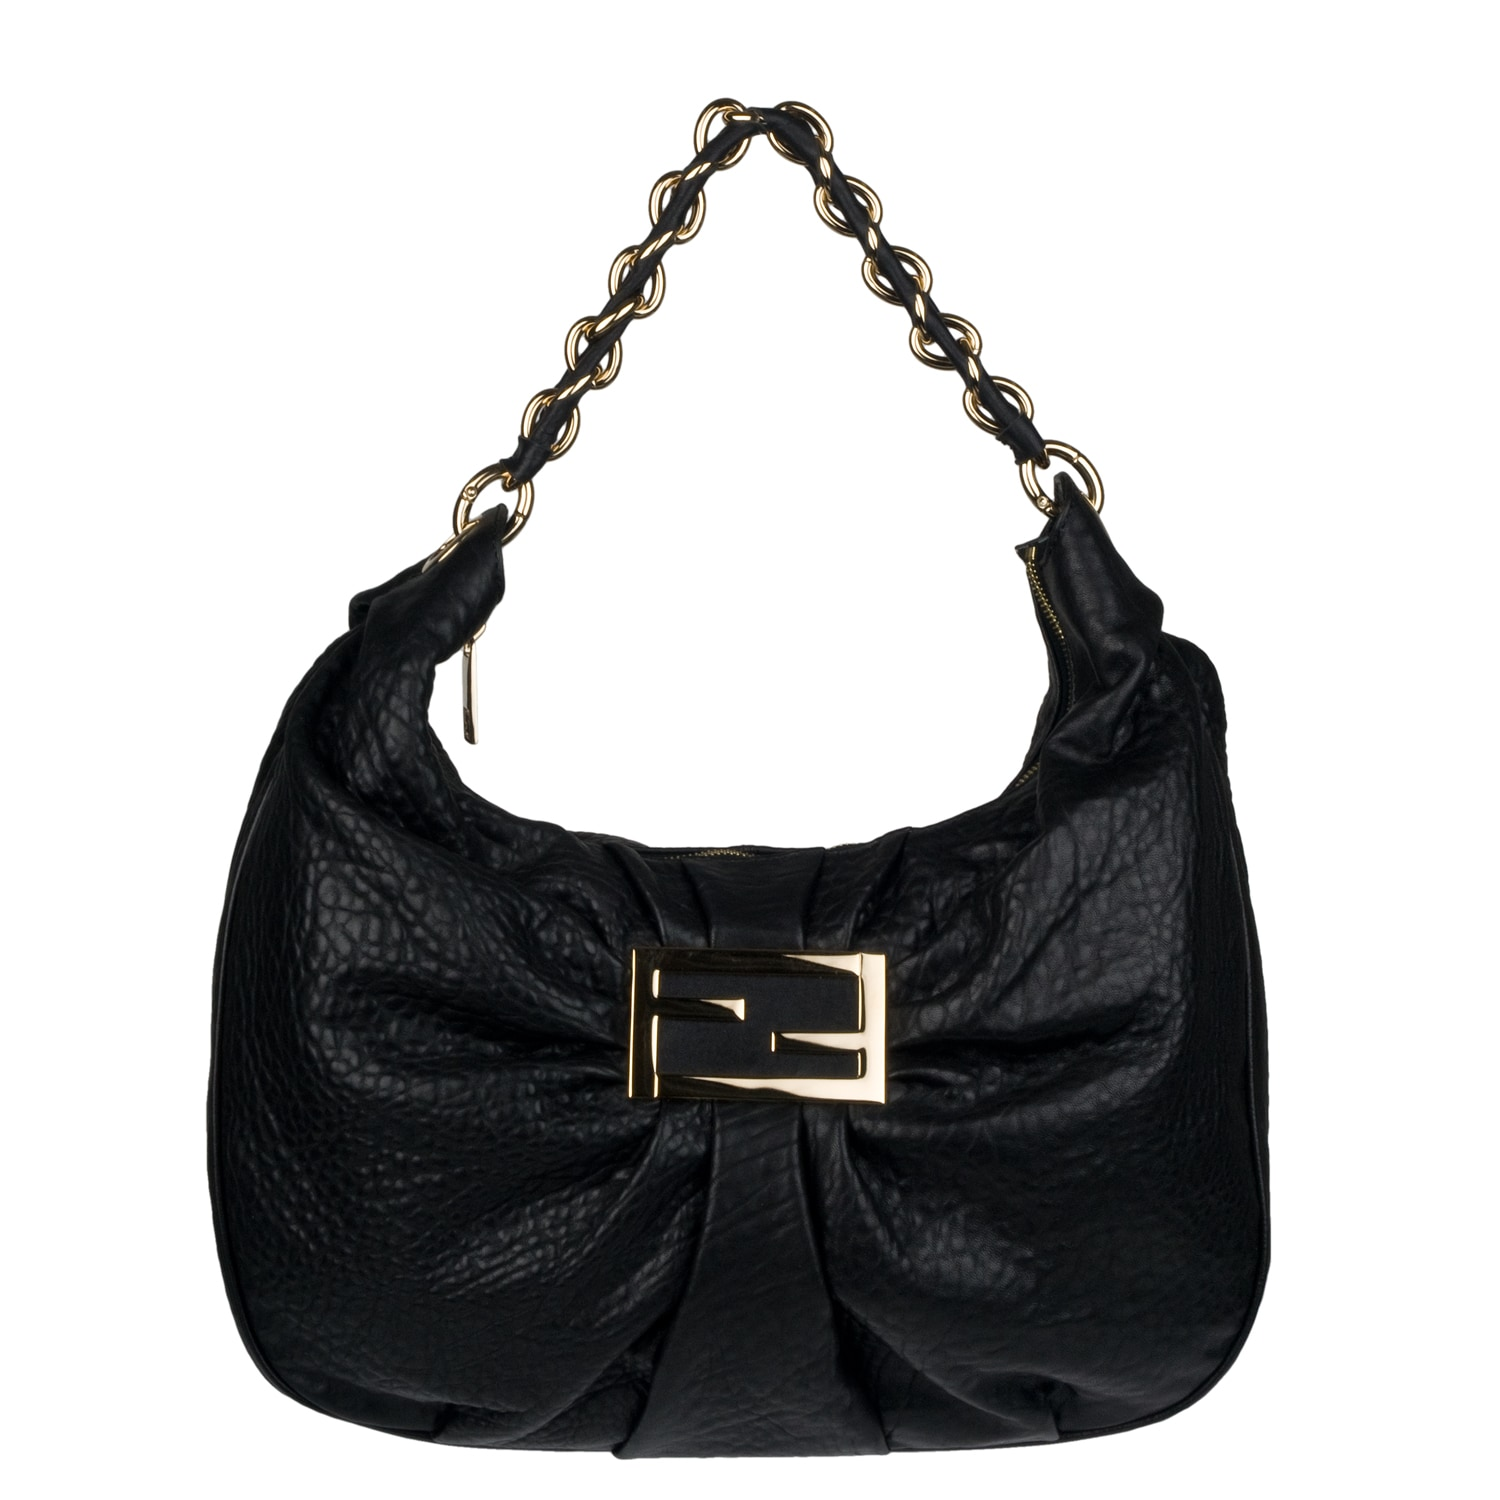 Fendi Leather Hobo